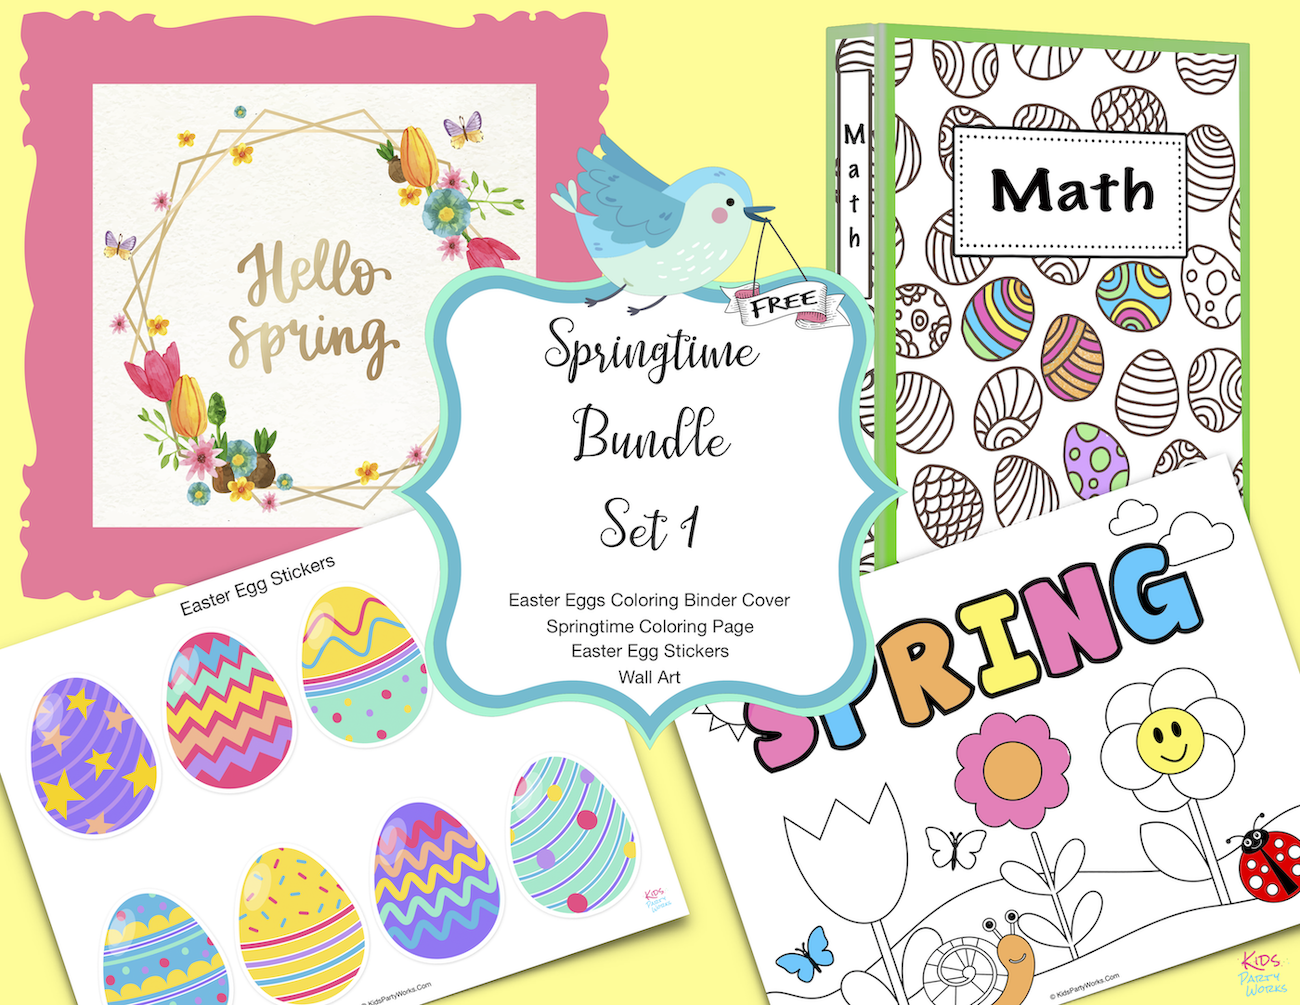 Free Easter Printables from KidsPartyWorks.Com. Come get this free set which includes a Book Binder, Coloring Page, Easter Stickers and Wall Art.